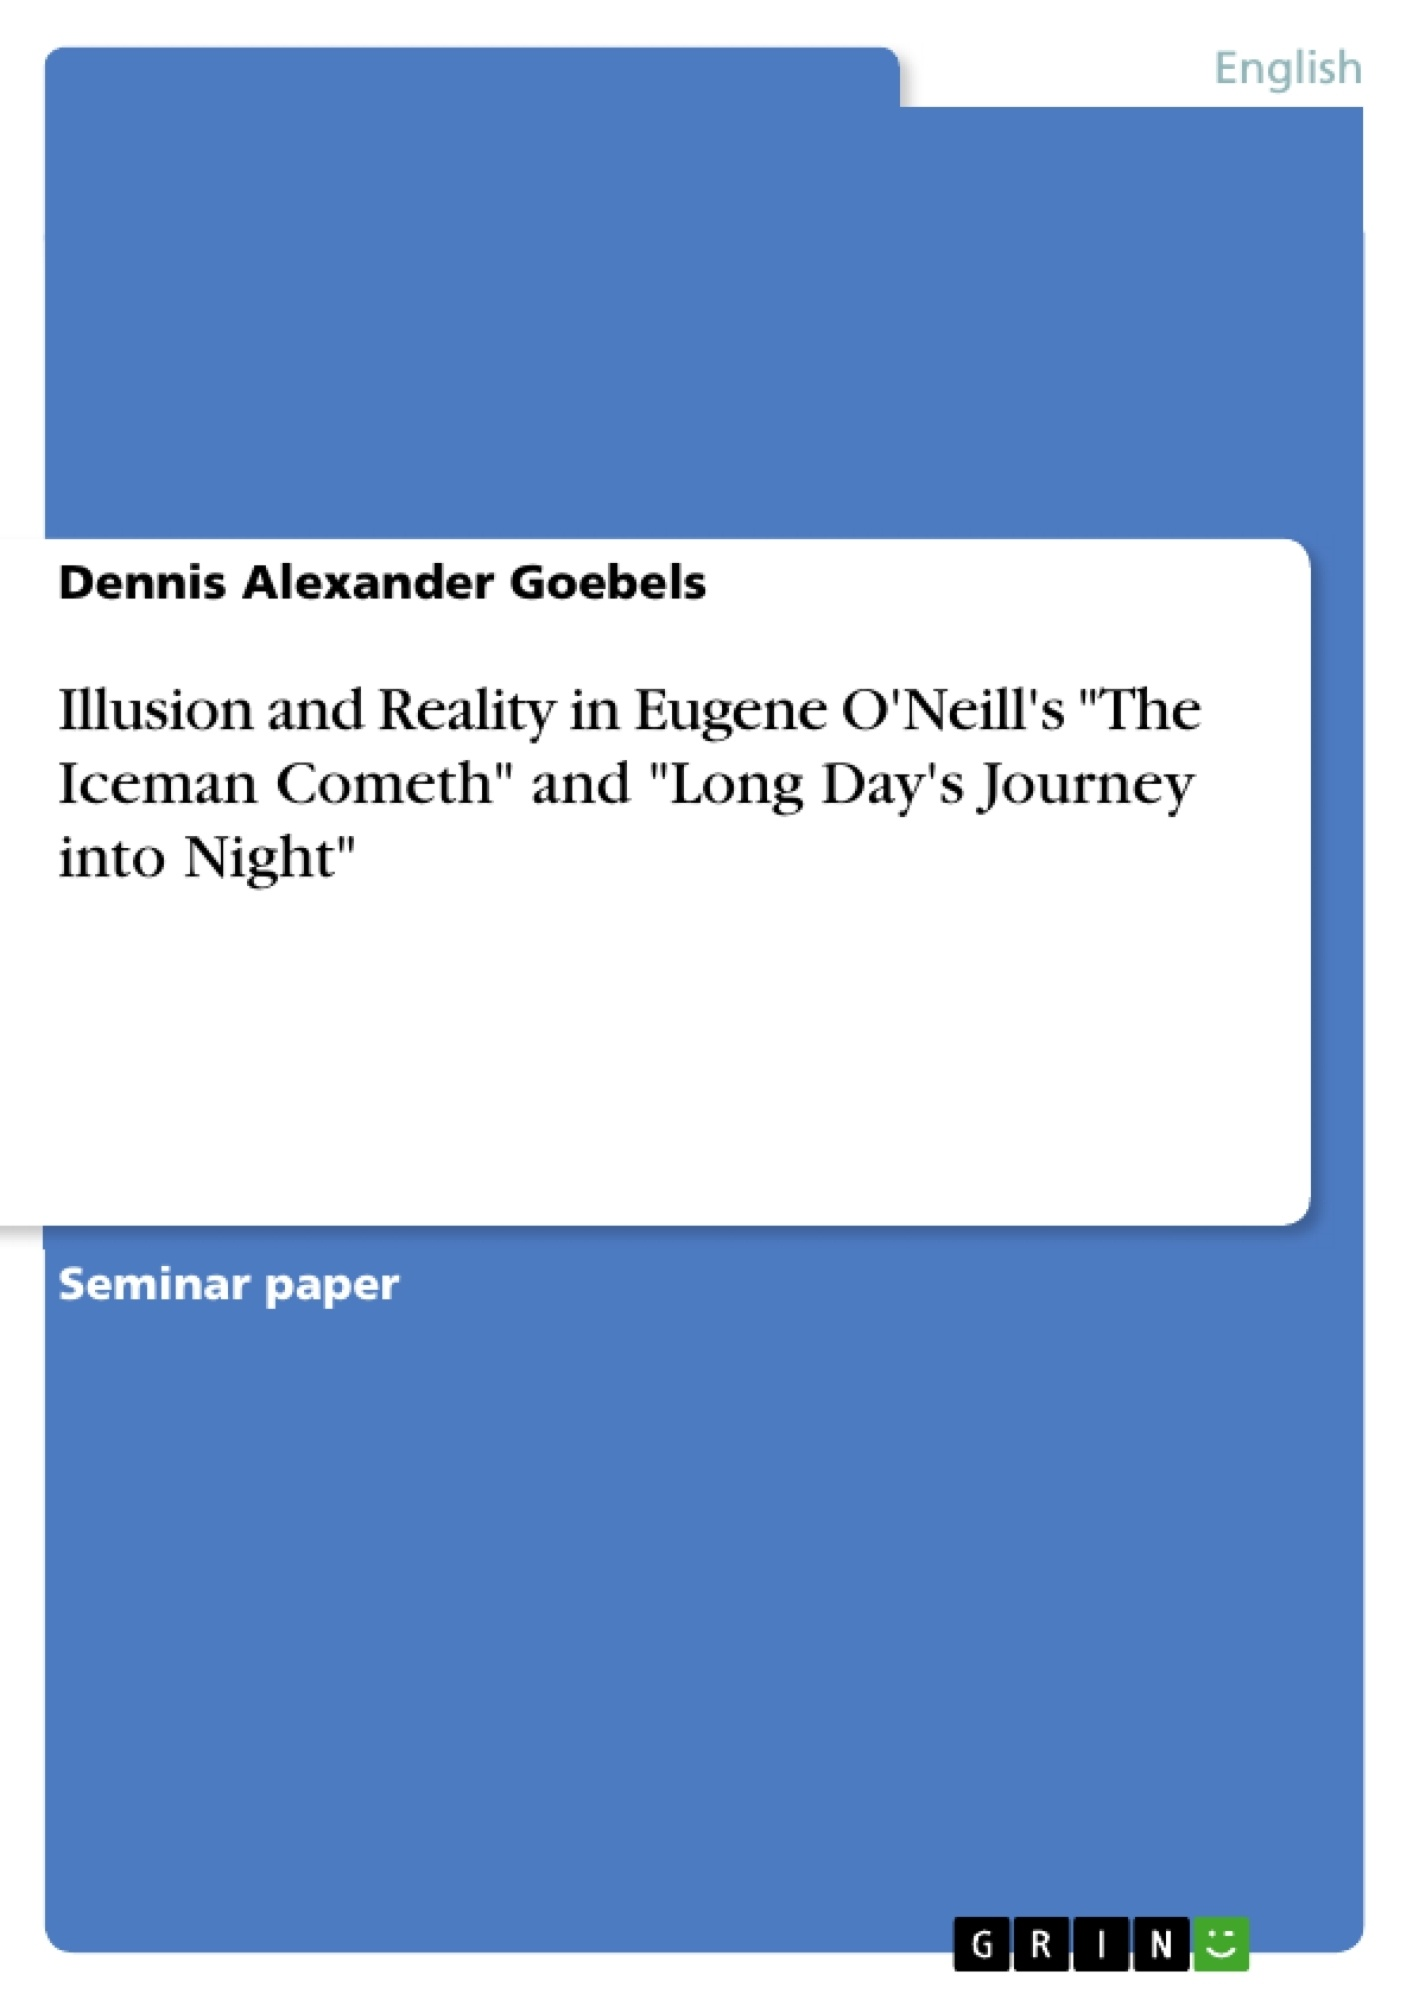 """Title: Illusion and Reality in Eugene O'Neill's """"The Iceman Cometh"""" and """"Long Day's Journey into Night"""""""